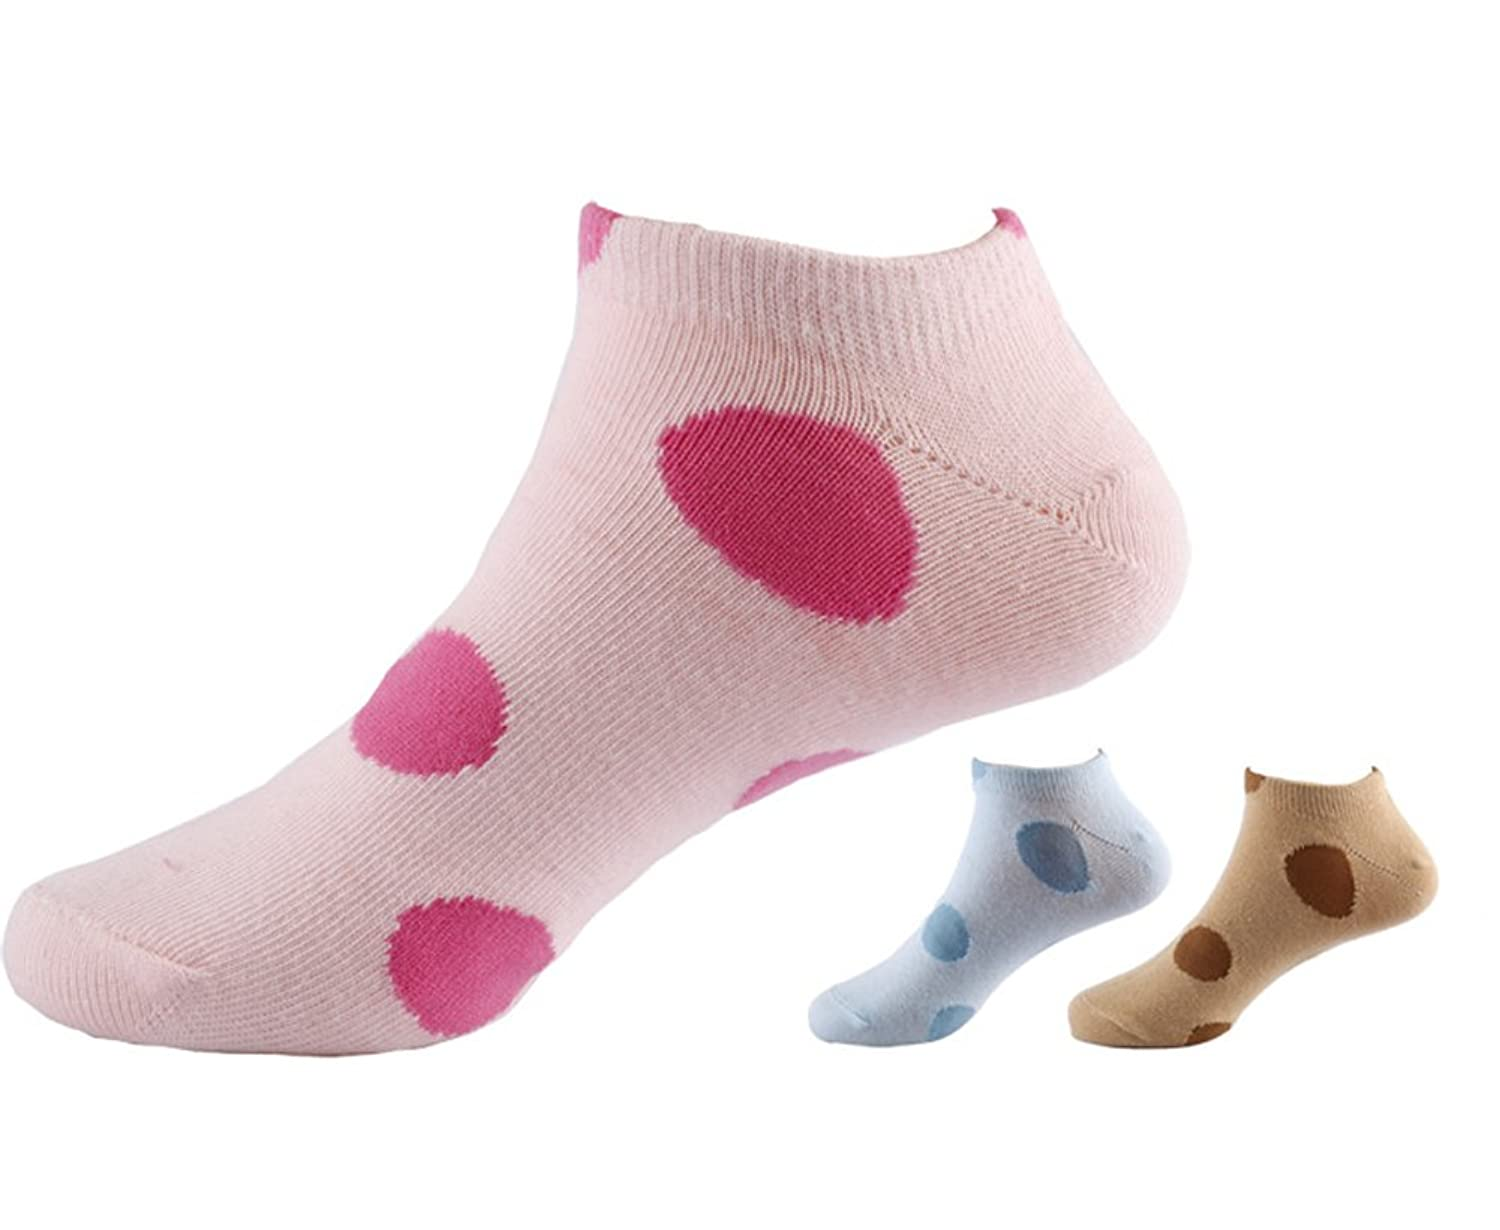 TULIPTREND Women's 3 Pack Poka Dot Sport Socks